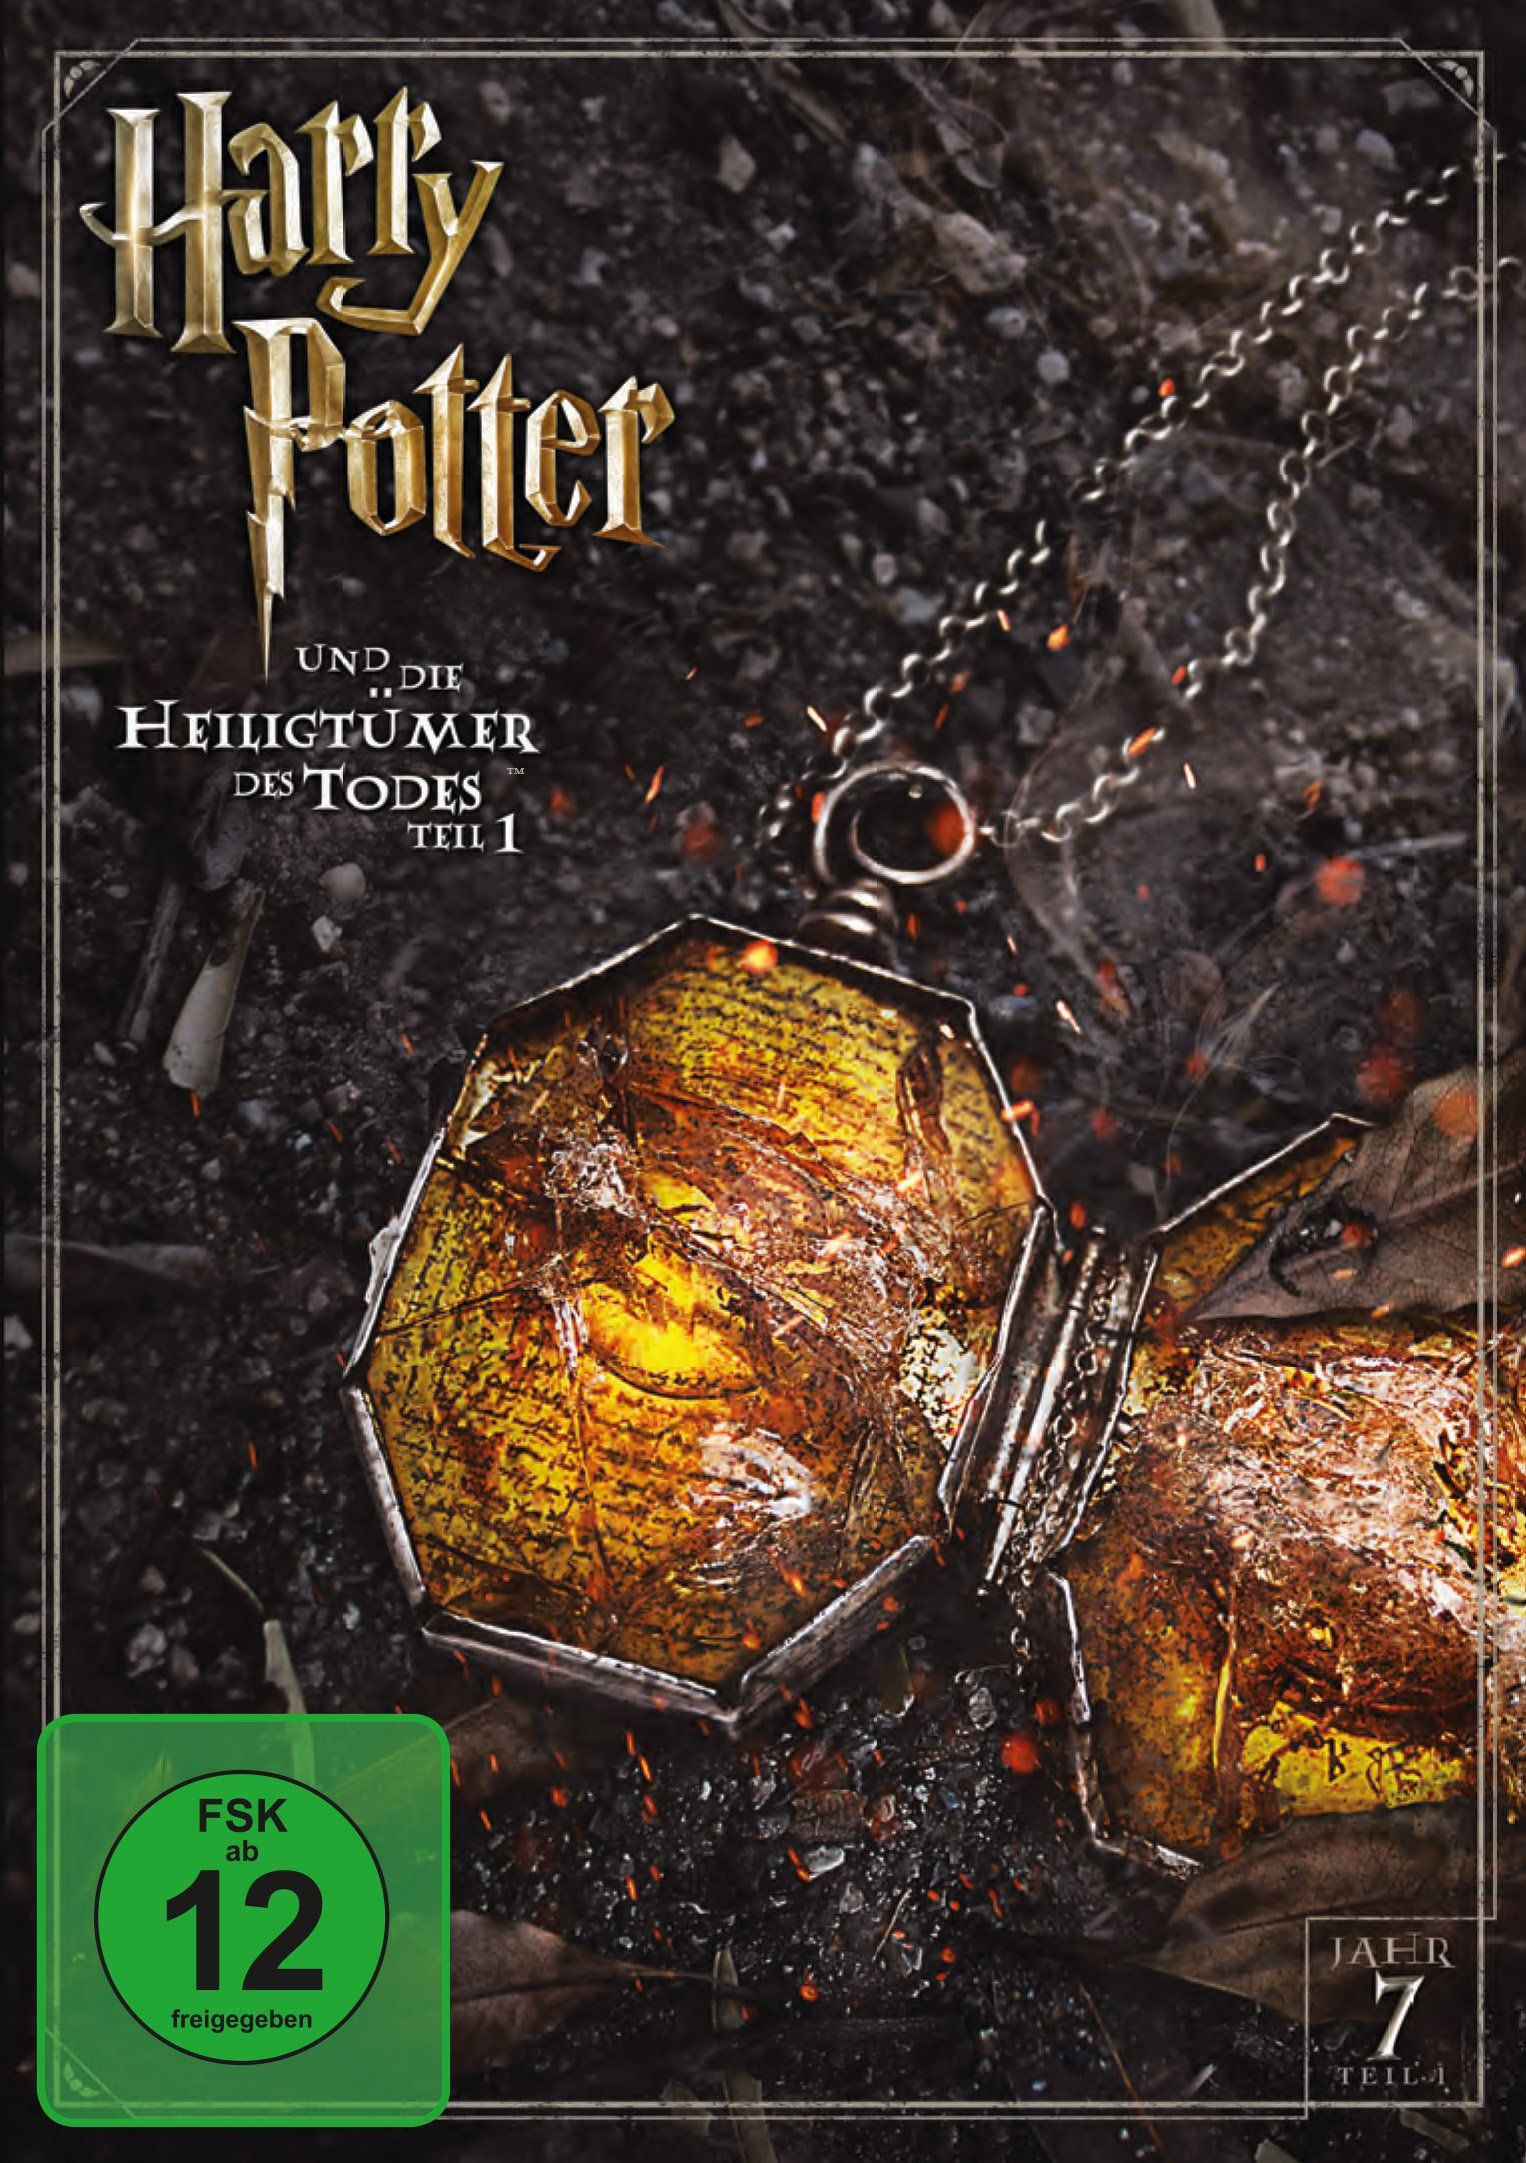 Harry Potter Complete Collection Alemania Dvd Complete Potter Harry Dvd Joyeria De Harry Potter Arte De Harry Potter Y Arte De Reloj